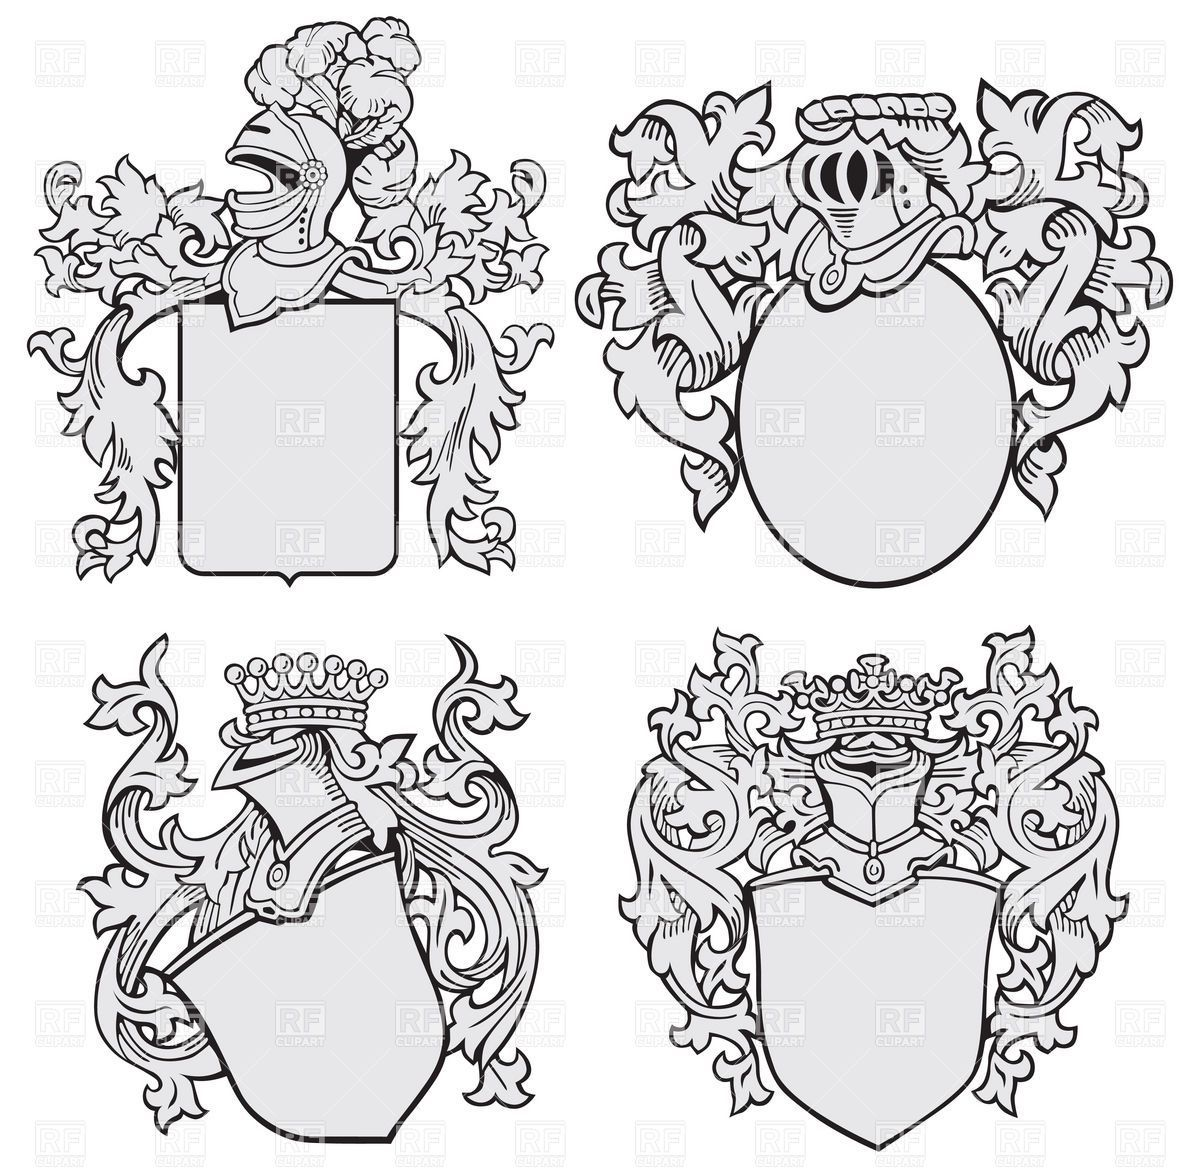 Heraldry clipart download free 5 » Clipart Portal.